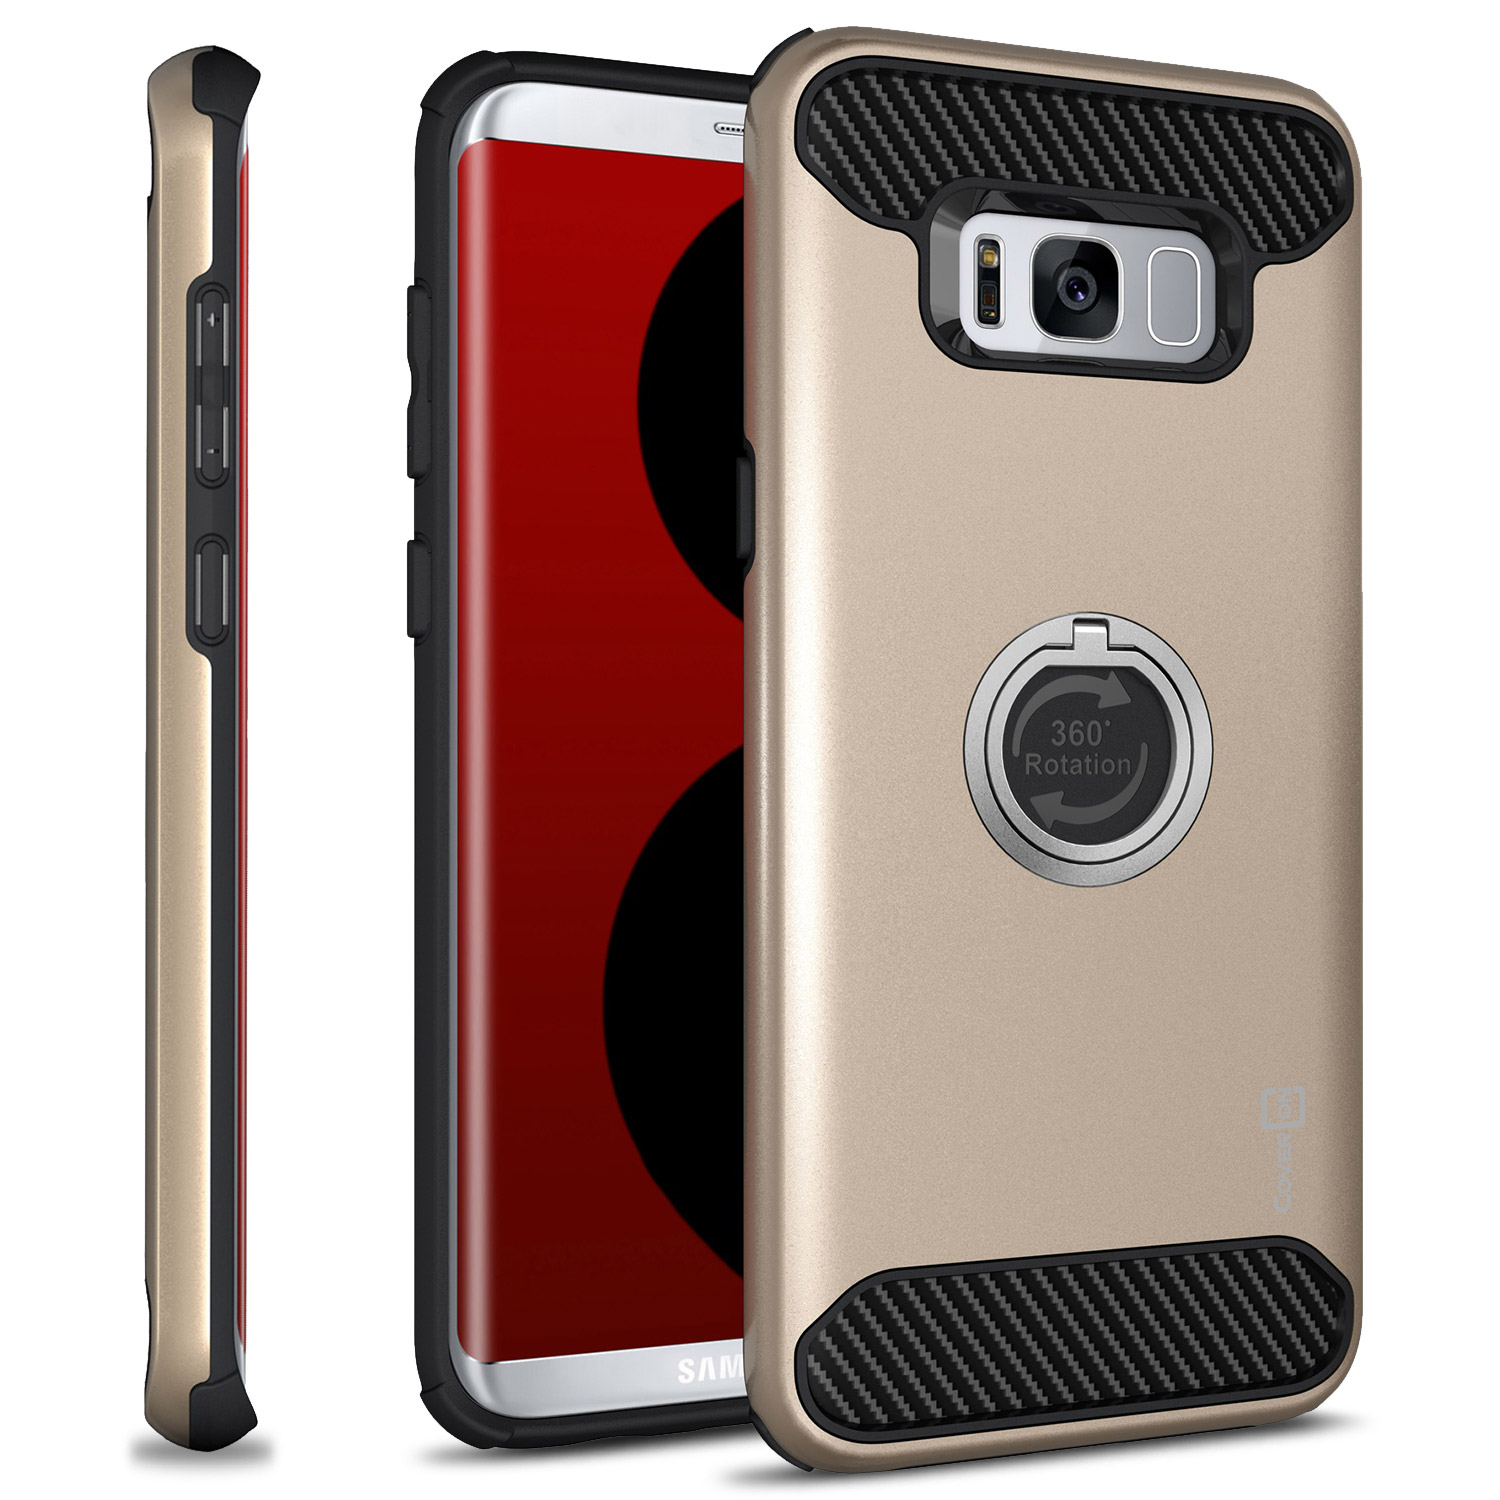 CoverON Samsung Galaxy S8 Plus Case, RingCase Series Hybrid Protective Phone Cover with Grip Ring